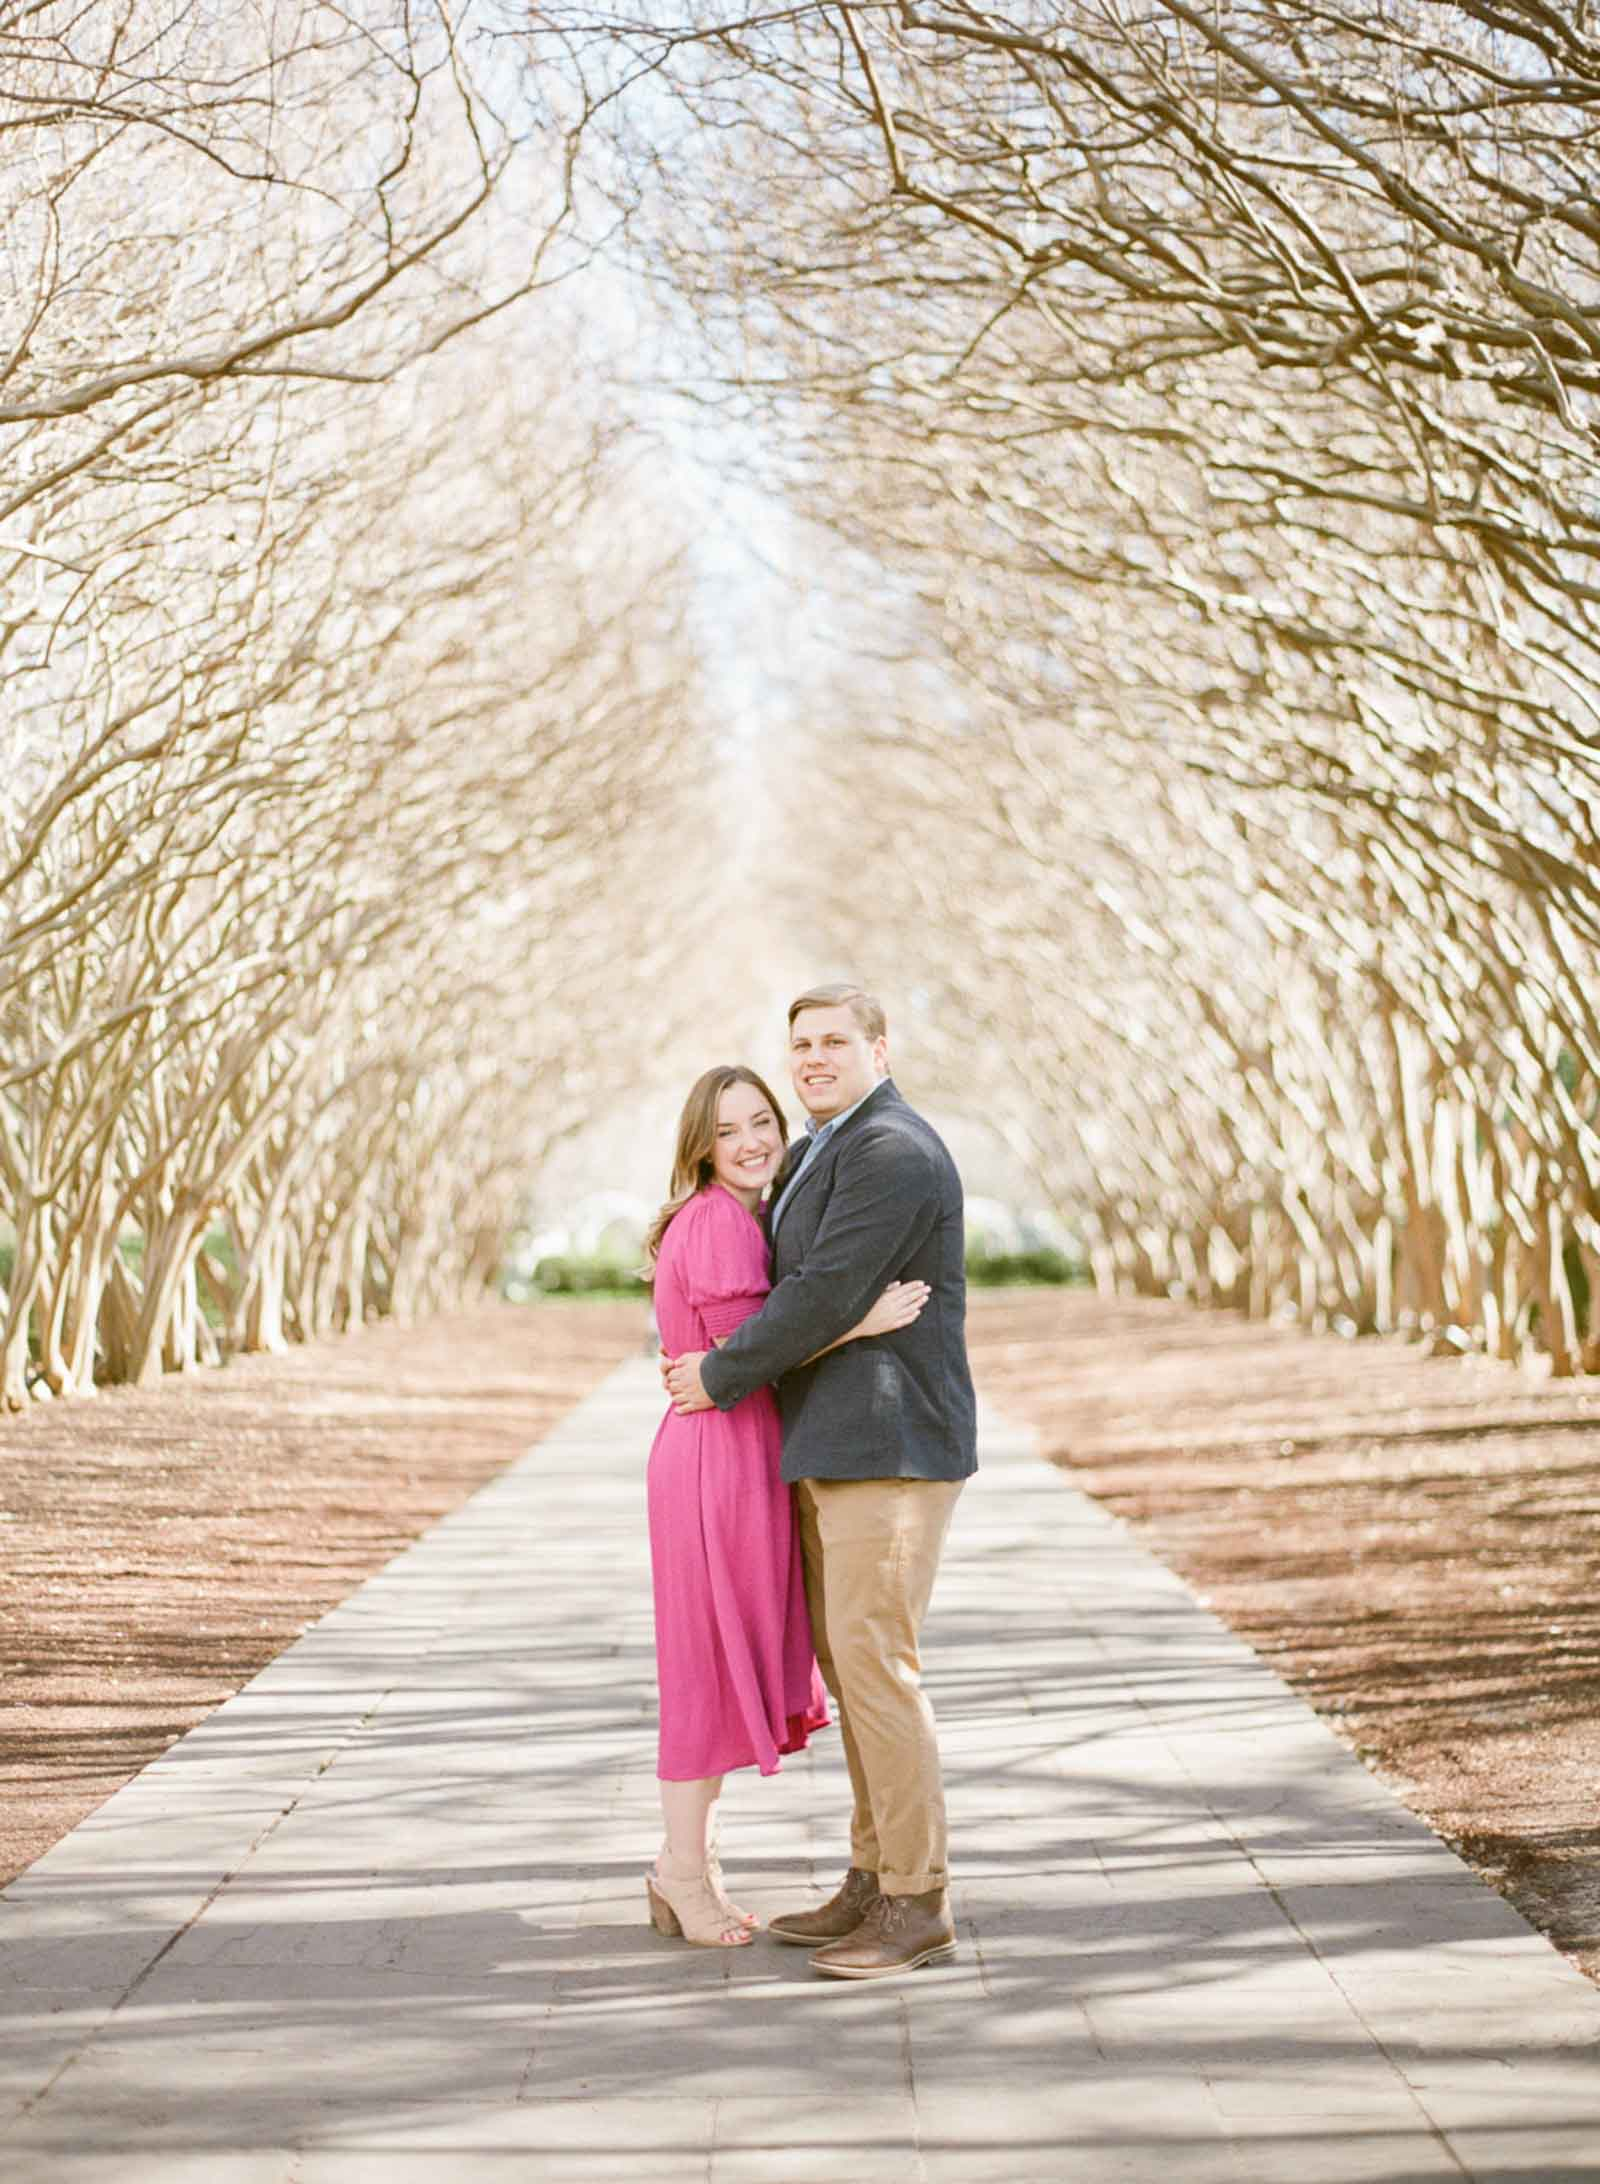 Dallas Arboretum Engagement-JenSymes-75.jpg